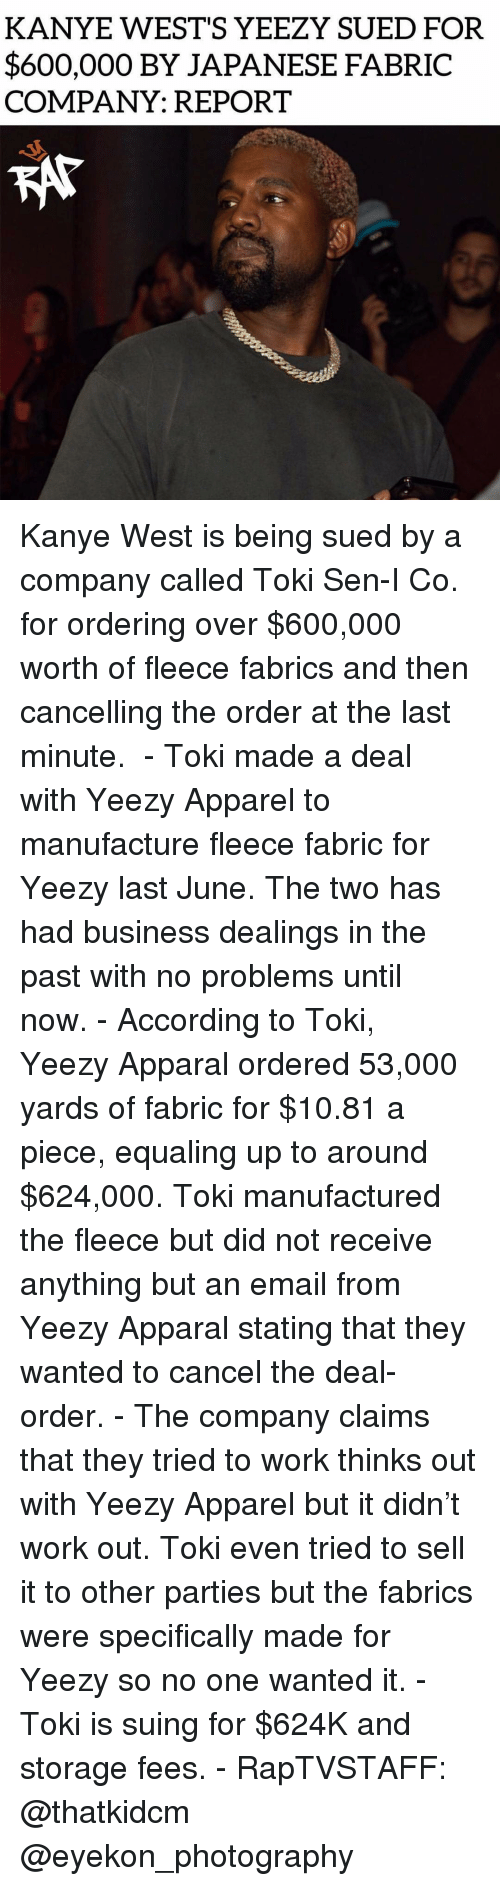 no problems: KANYE WEST'S YEEZY SUED FOR  $600,000 BY JAPANESE FABRIC  COMPANY: REPORT Kanye West is being sued by a company called Toki Sen-I Co. for ordering over $600,000 worth of fleece fabrics and then cancelling the order at the last minute.  - Toki made a deal with Yeezy Apparel to manufacture fleece fabric for Yeezy last June. The two has had business dealings in the past with no problems until now. - According to Toki, Yeezy Apparal ordered 53,000 yards of fabric for $10.81 a piece, equaling up to around $624,000. Toki manufactured the fleece but did not receive anything but an email from Yeezy Apparal stating that they wanted to cancel the deal-order. - The company claims that they tried to work thinks out with Yeezy Apparel but it didn't work out. Toki even tried to sell it to other parties but the fabrics were specifically made for Yeezy so no one wanted it. - Toki is suing for $624K and storage fees. - RapTVSTAFF: @thatkidcm @eyekon_photography